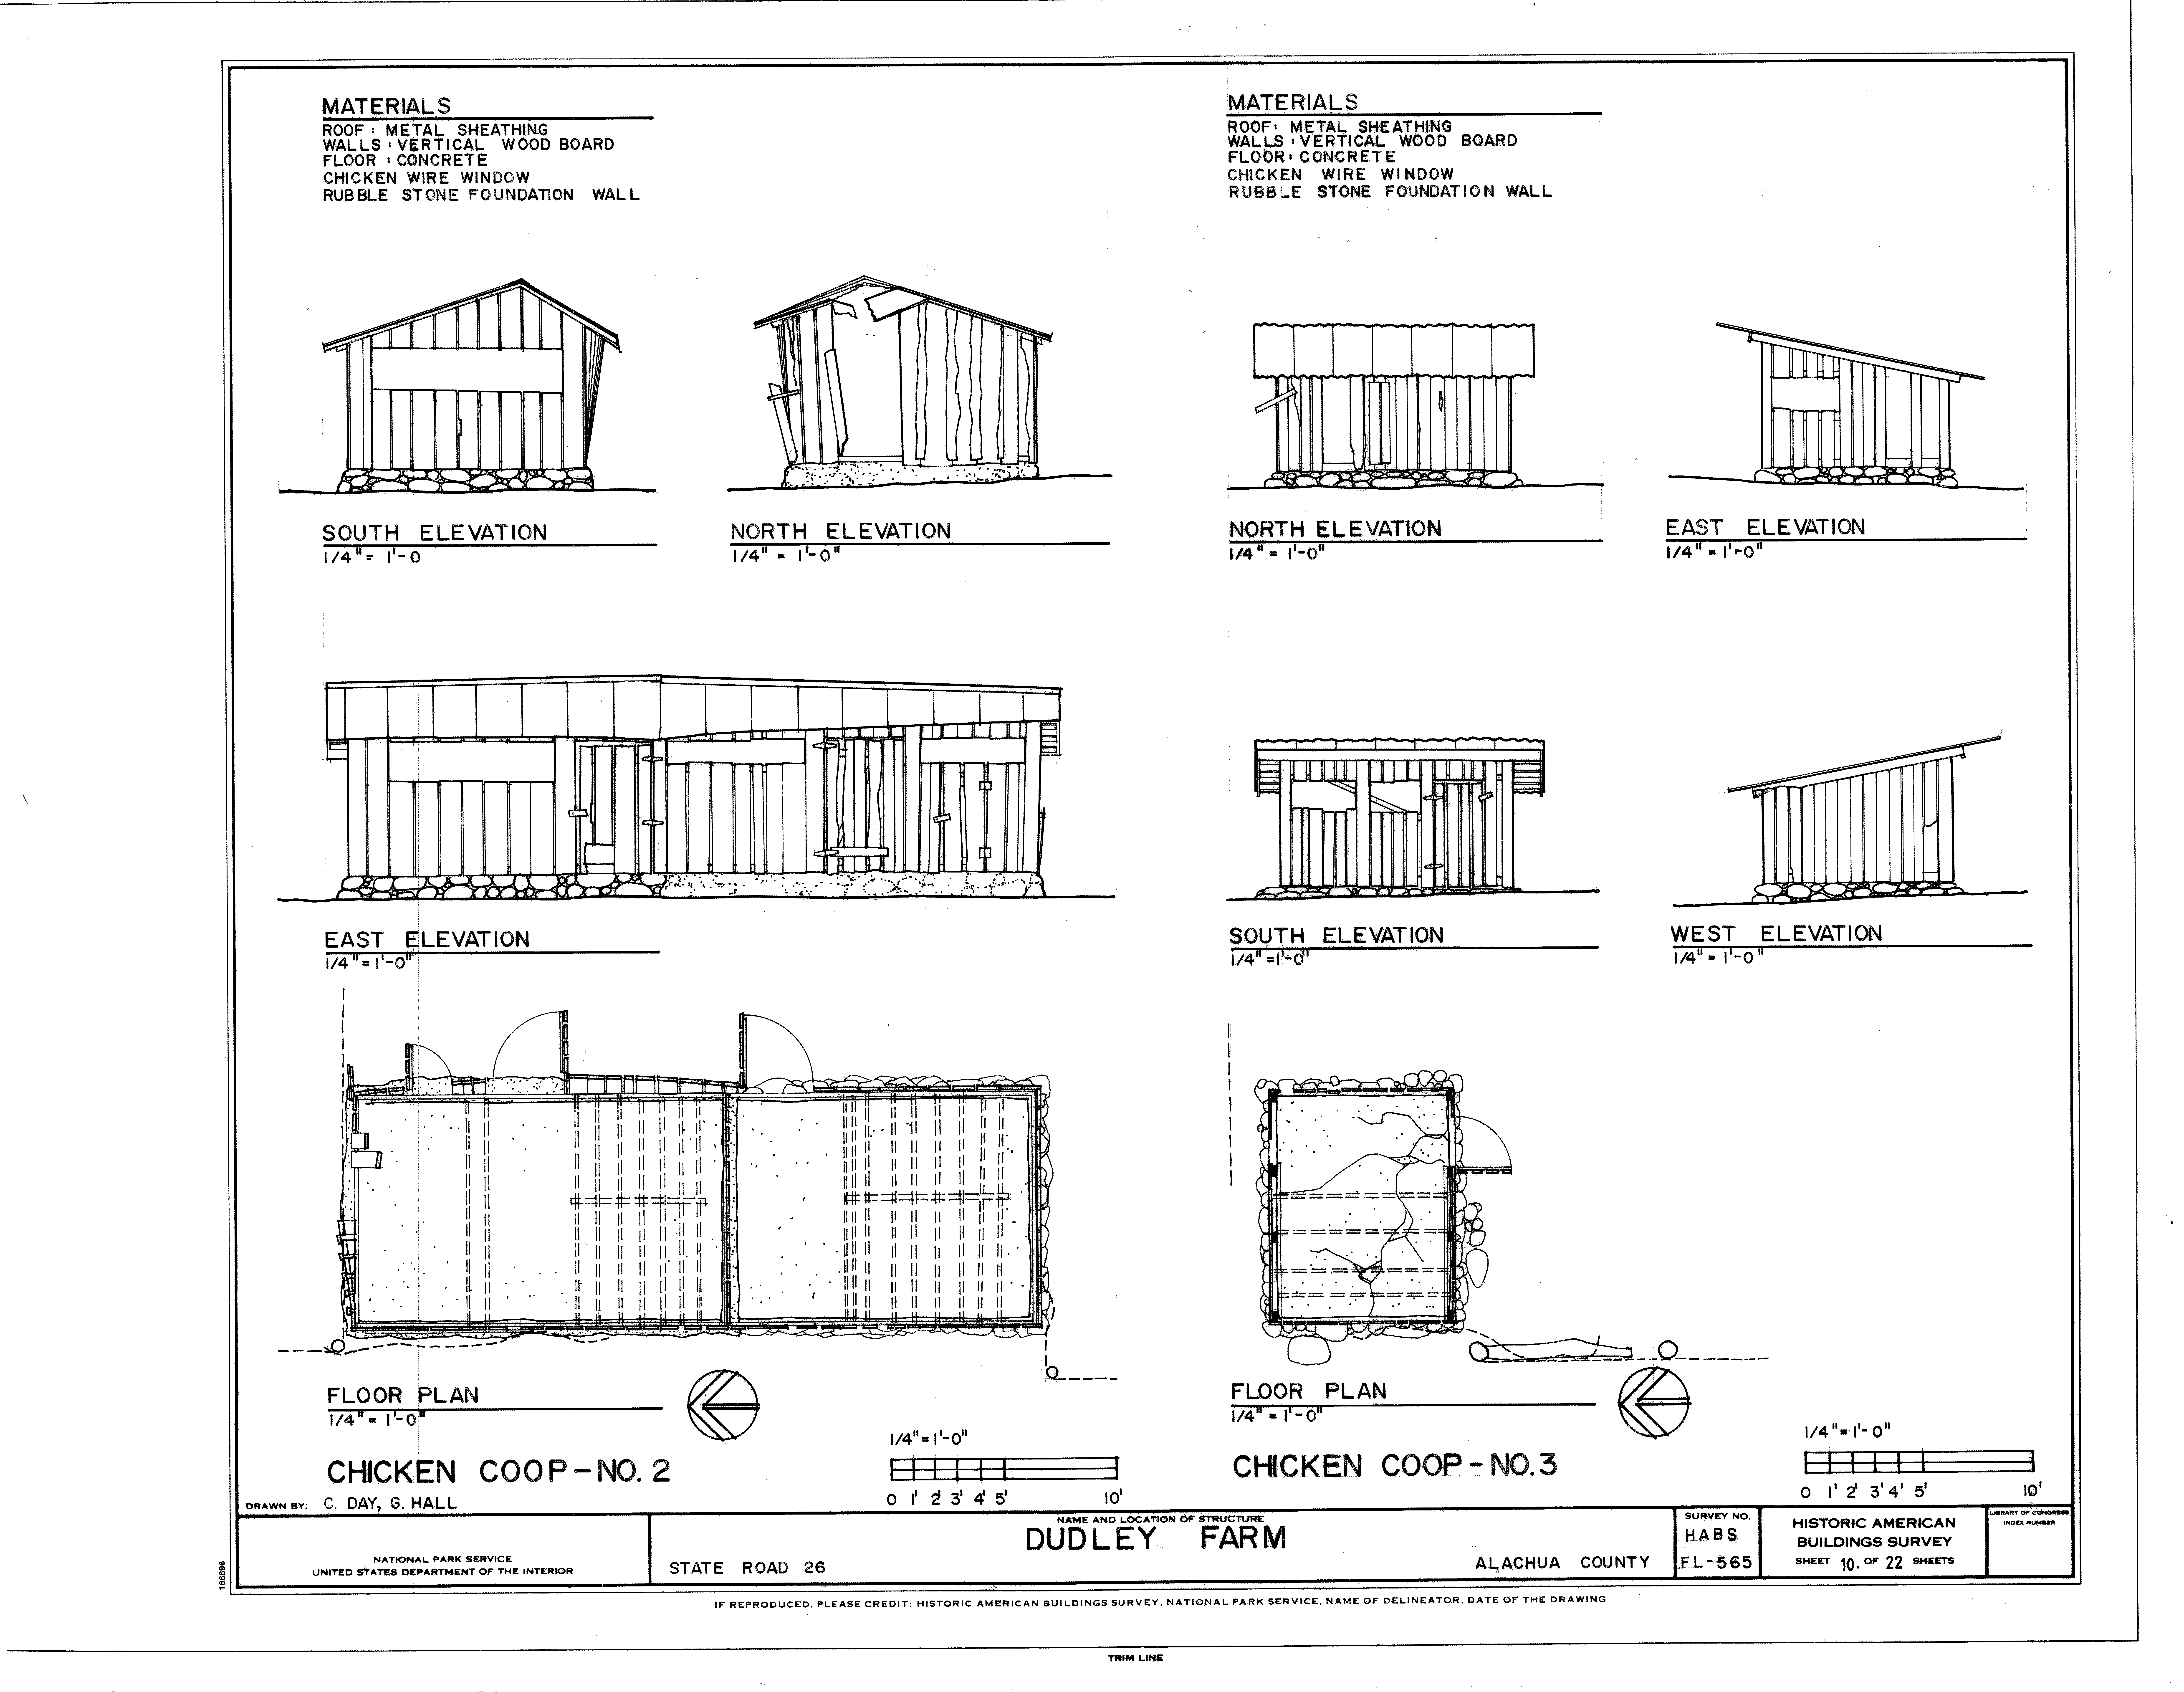 File chicken coop no 2 and no 3 elevations and floor plans dudley farm farmhouse and for Hen house design plans